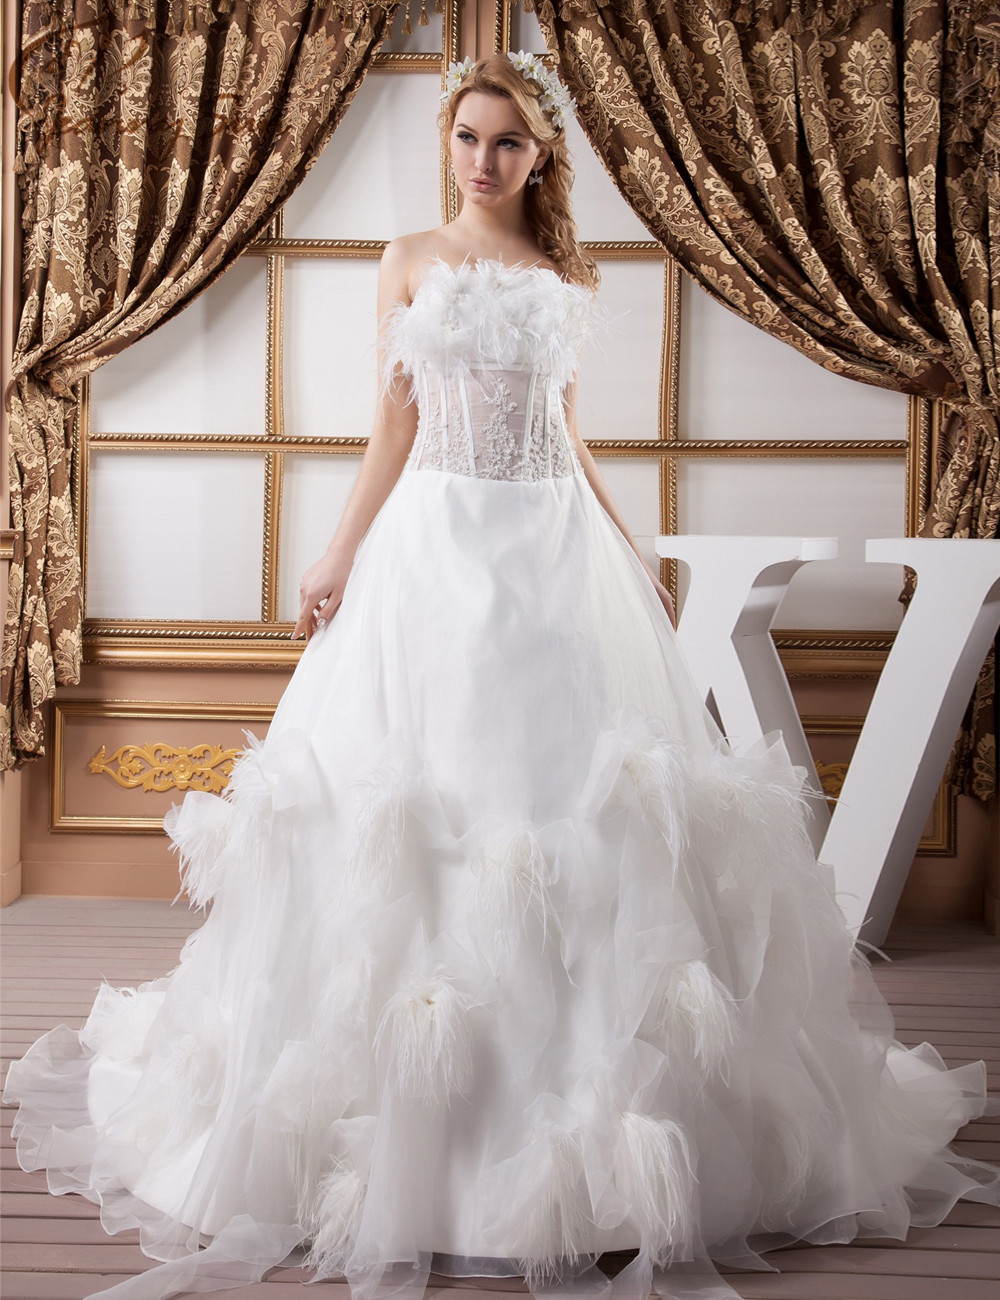 Jeanny Sun Feather Wedding Dresses Winter Ball Gowns Church Wedding ...